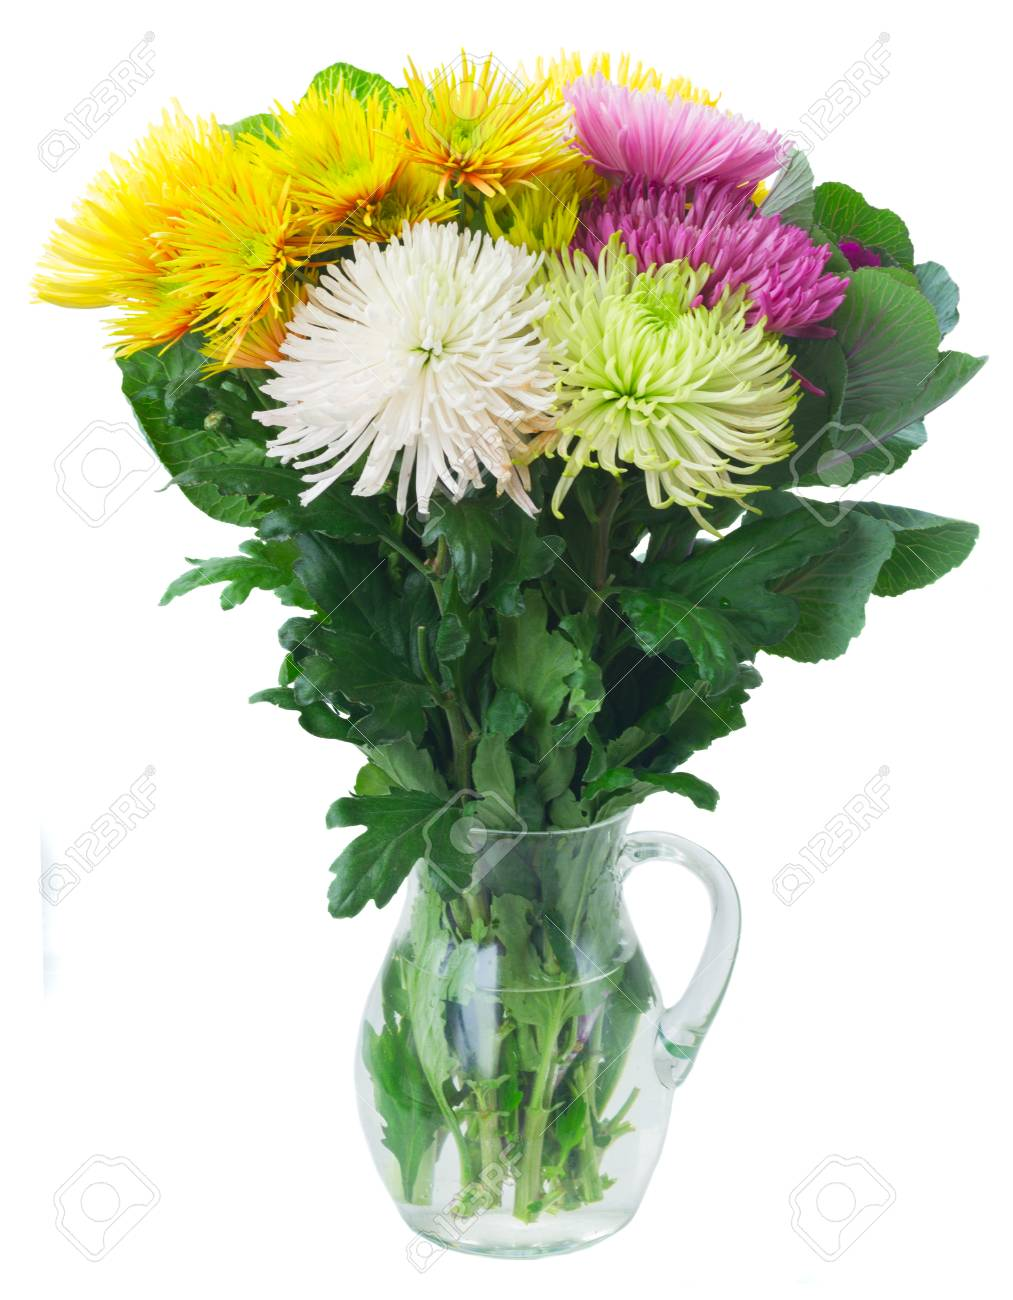 Chrisantemum Fresh Fall Flowers Bouquet In Vase Isolated On White